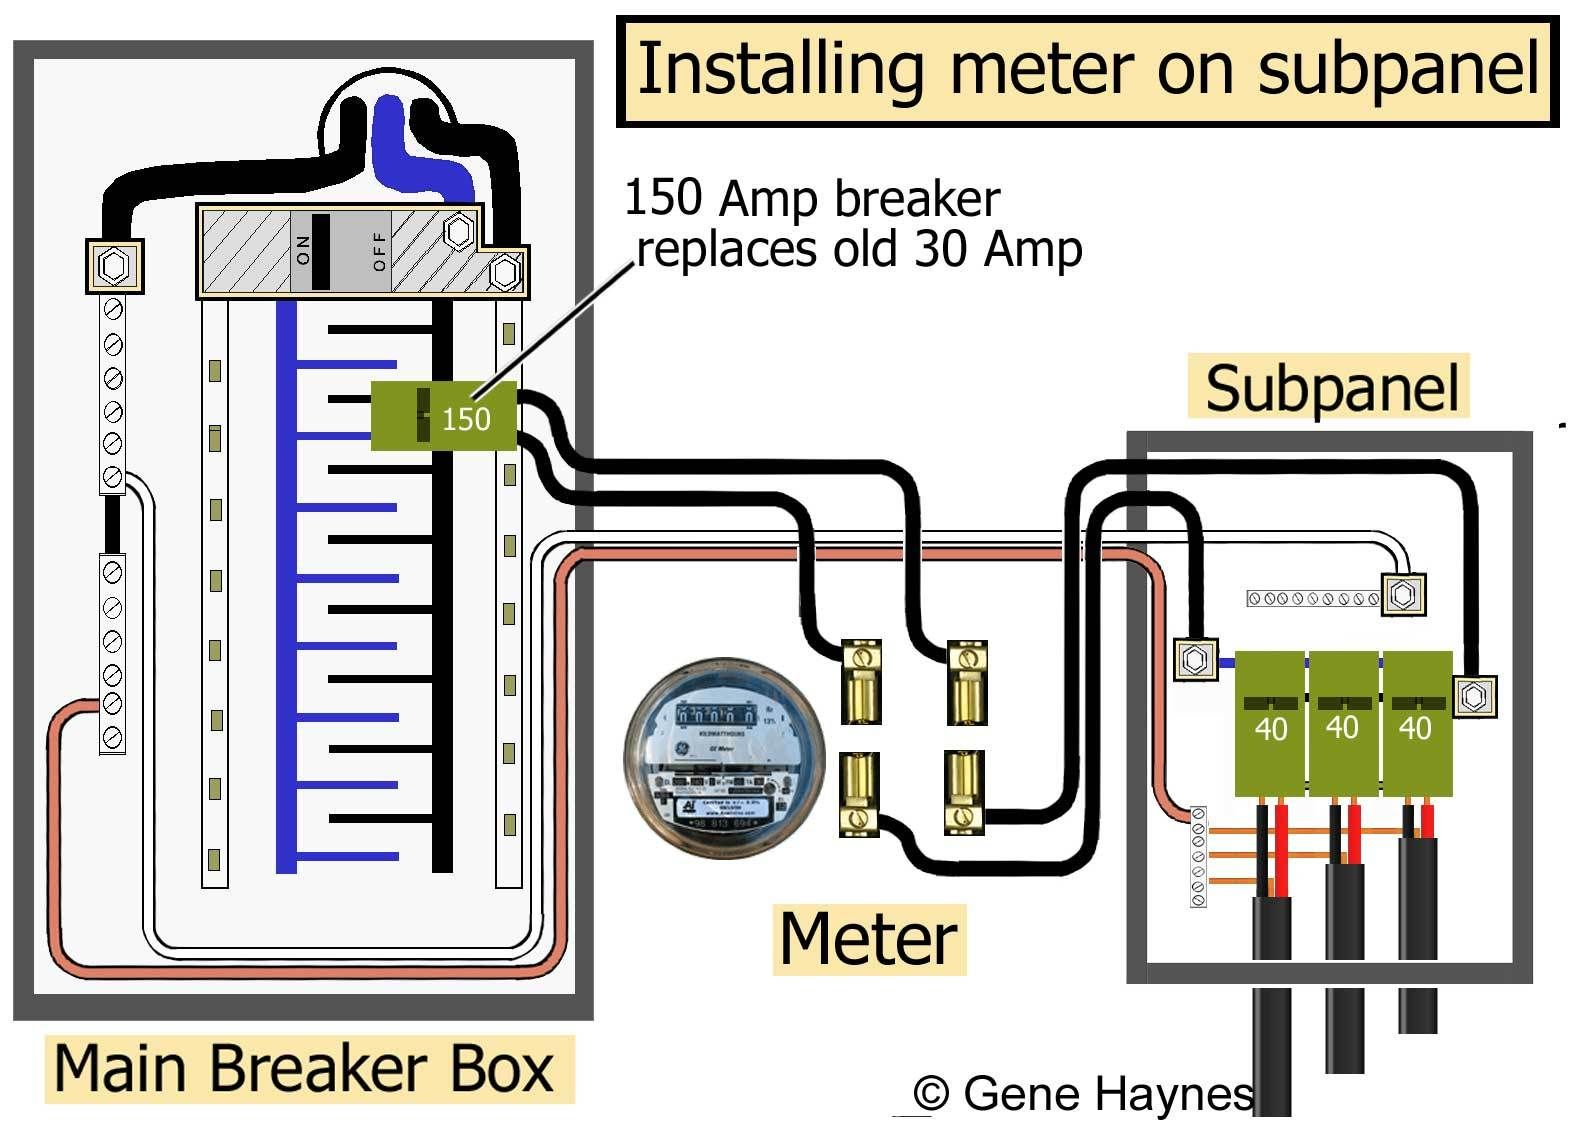 medium resolution of wiring diagram for meter box wiring diagram inside diagram of wiring meter box for homes on wiring from meter to breaker